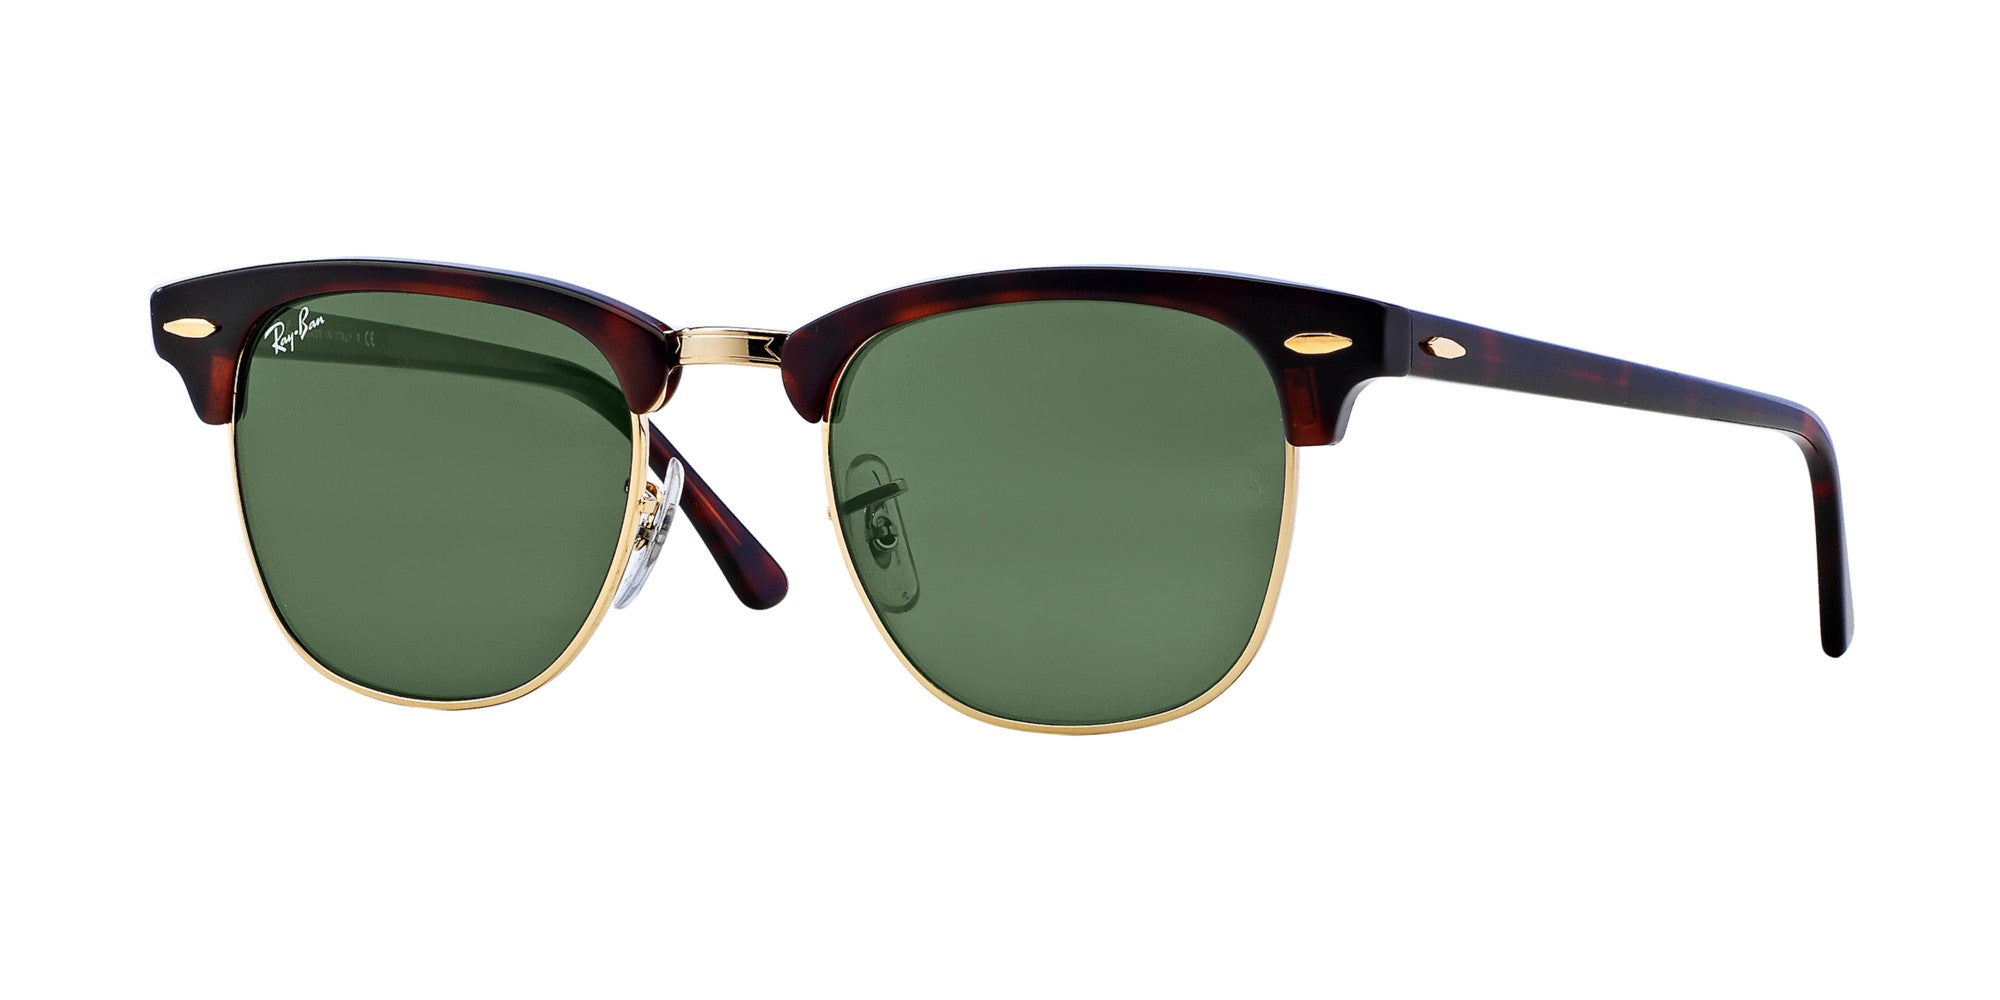 28ffd528ee8e7 Ray-Ban CLUBMASTER - SHINY RED HAVANA Frame GREEN FLASH GRADIENT Lenses  51mm Non